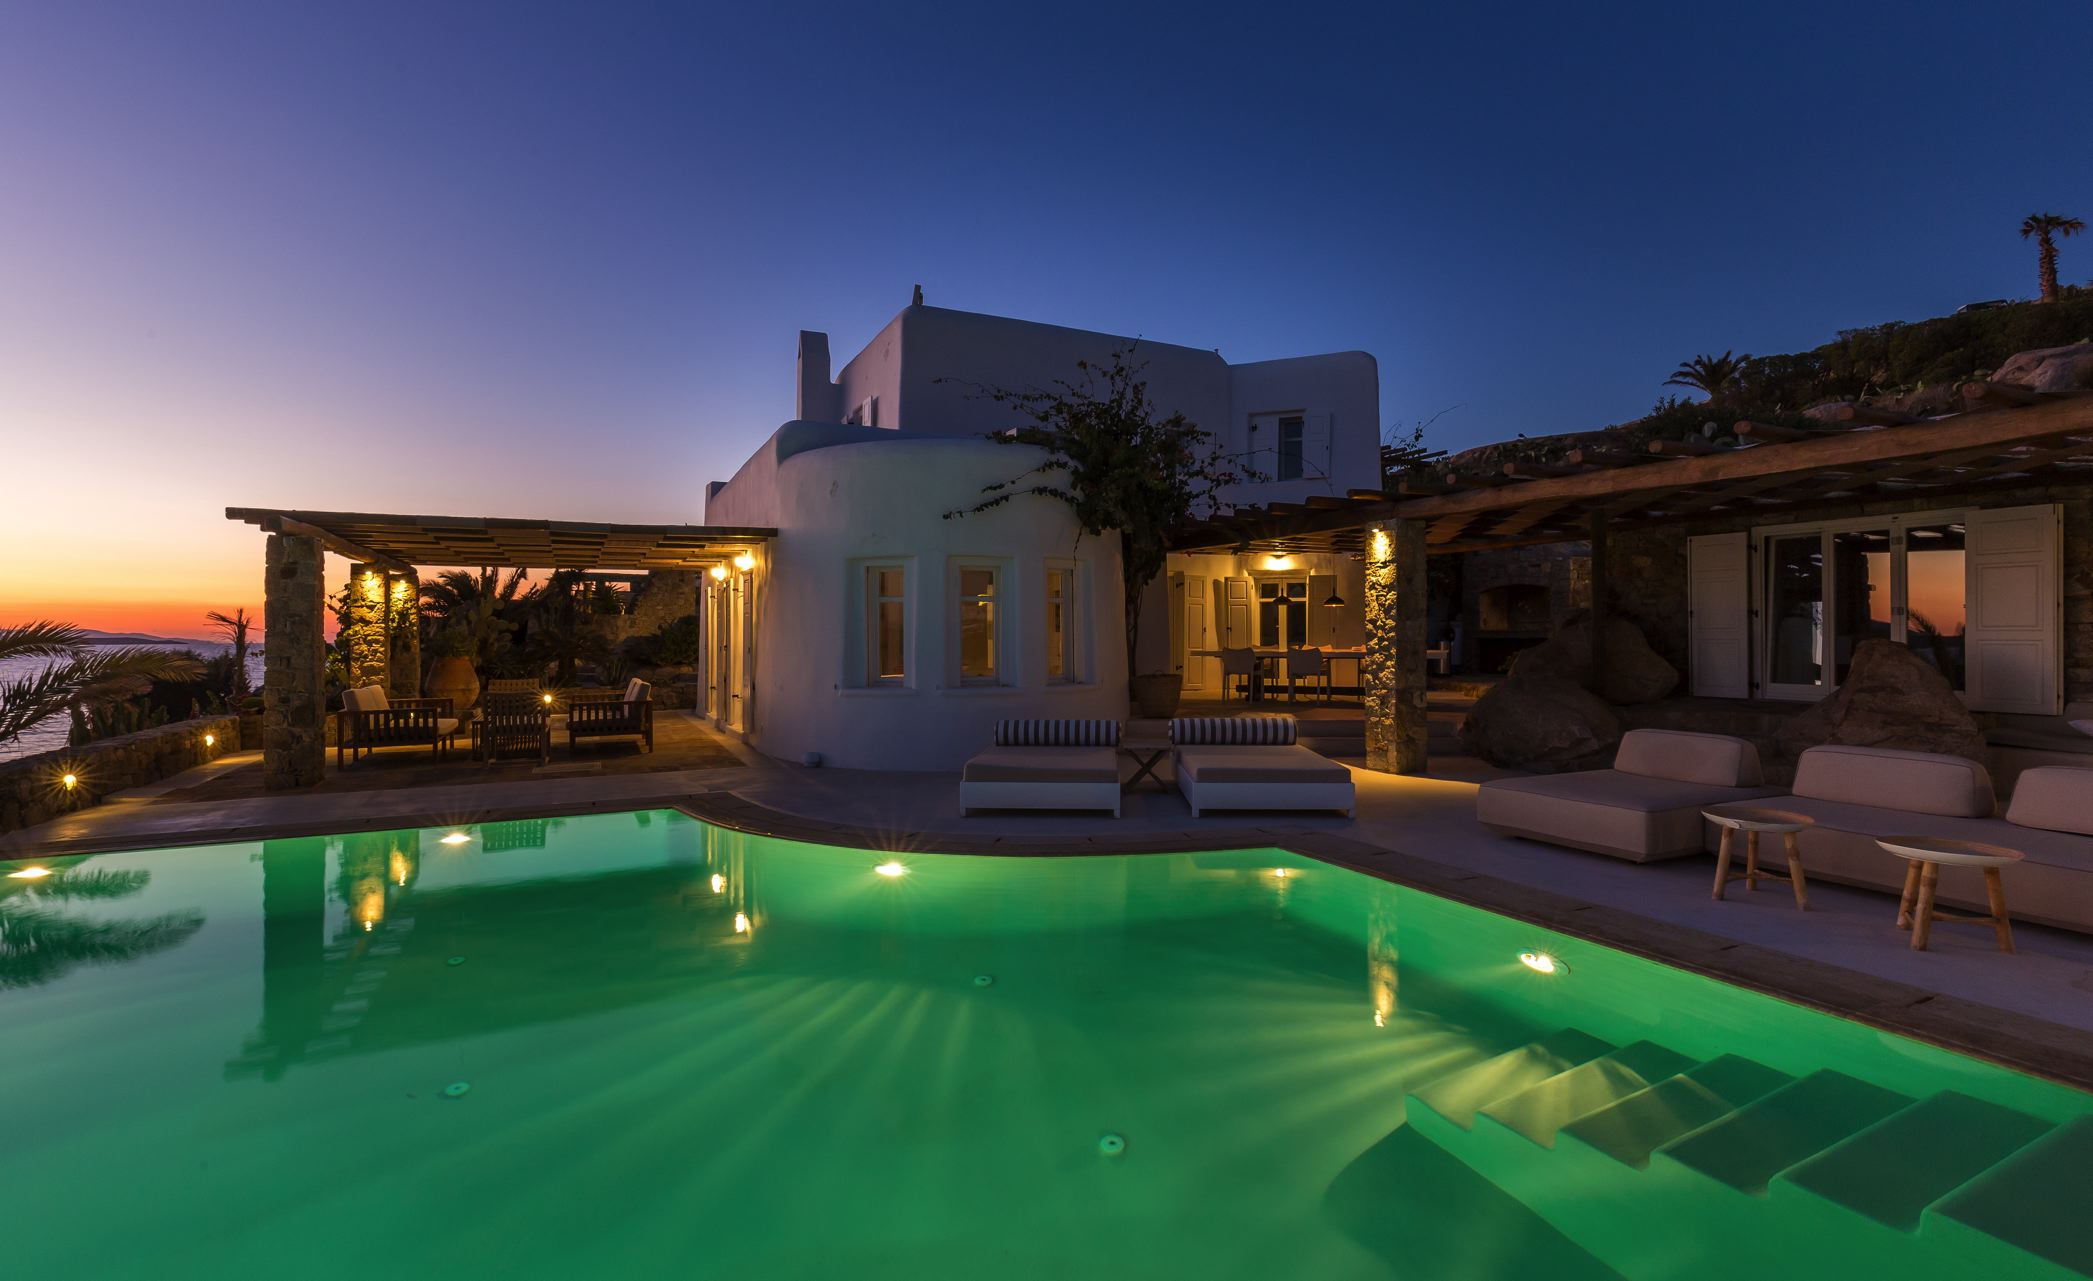 Villa Kymothoe, Mykonos, Greece